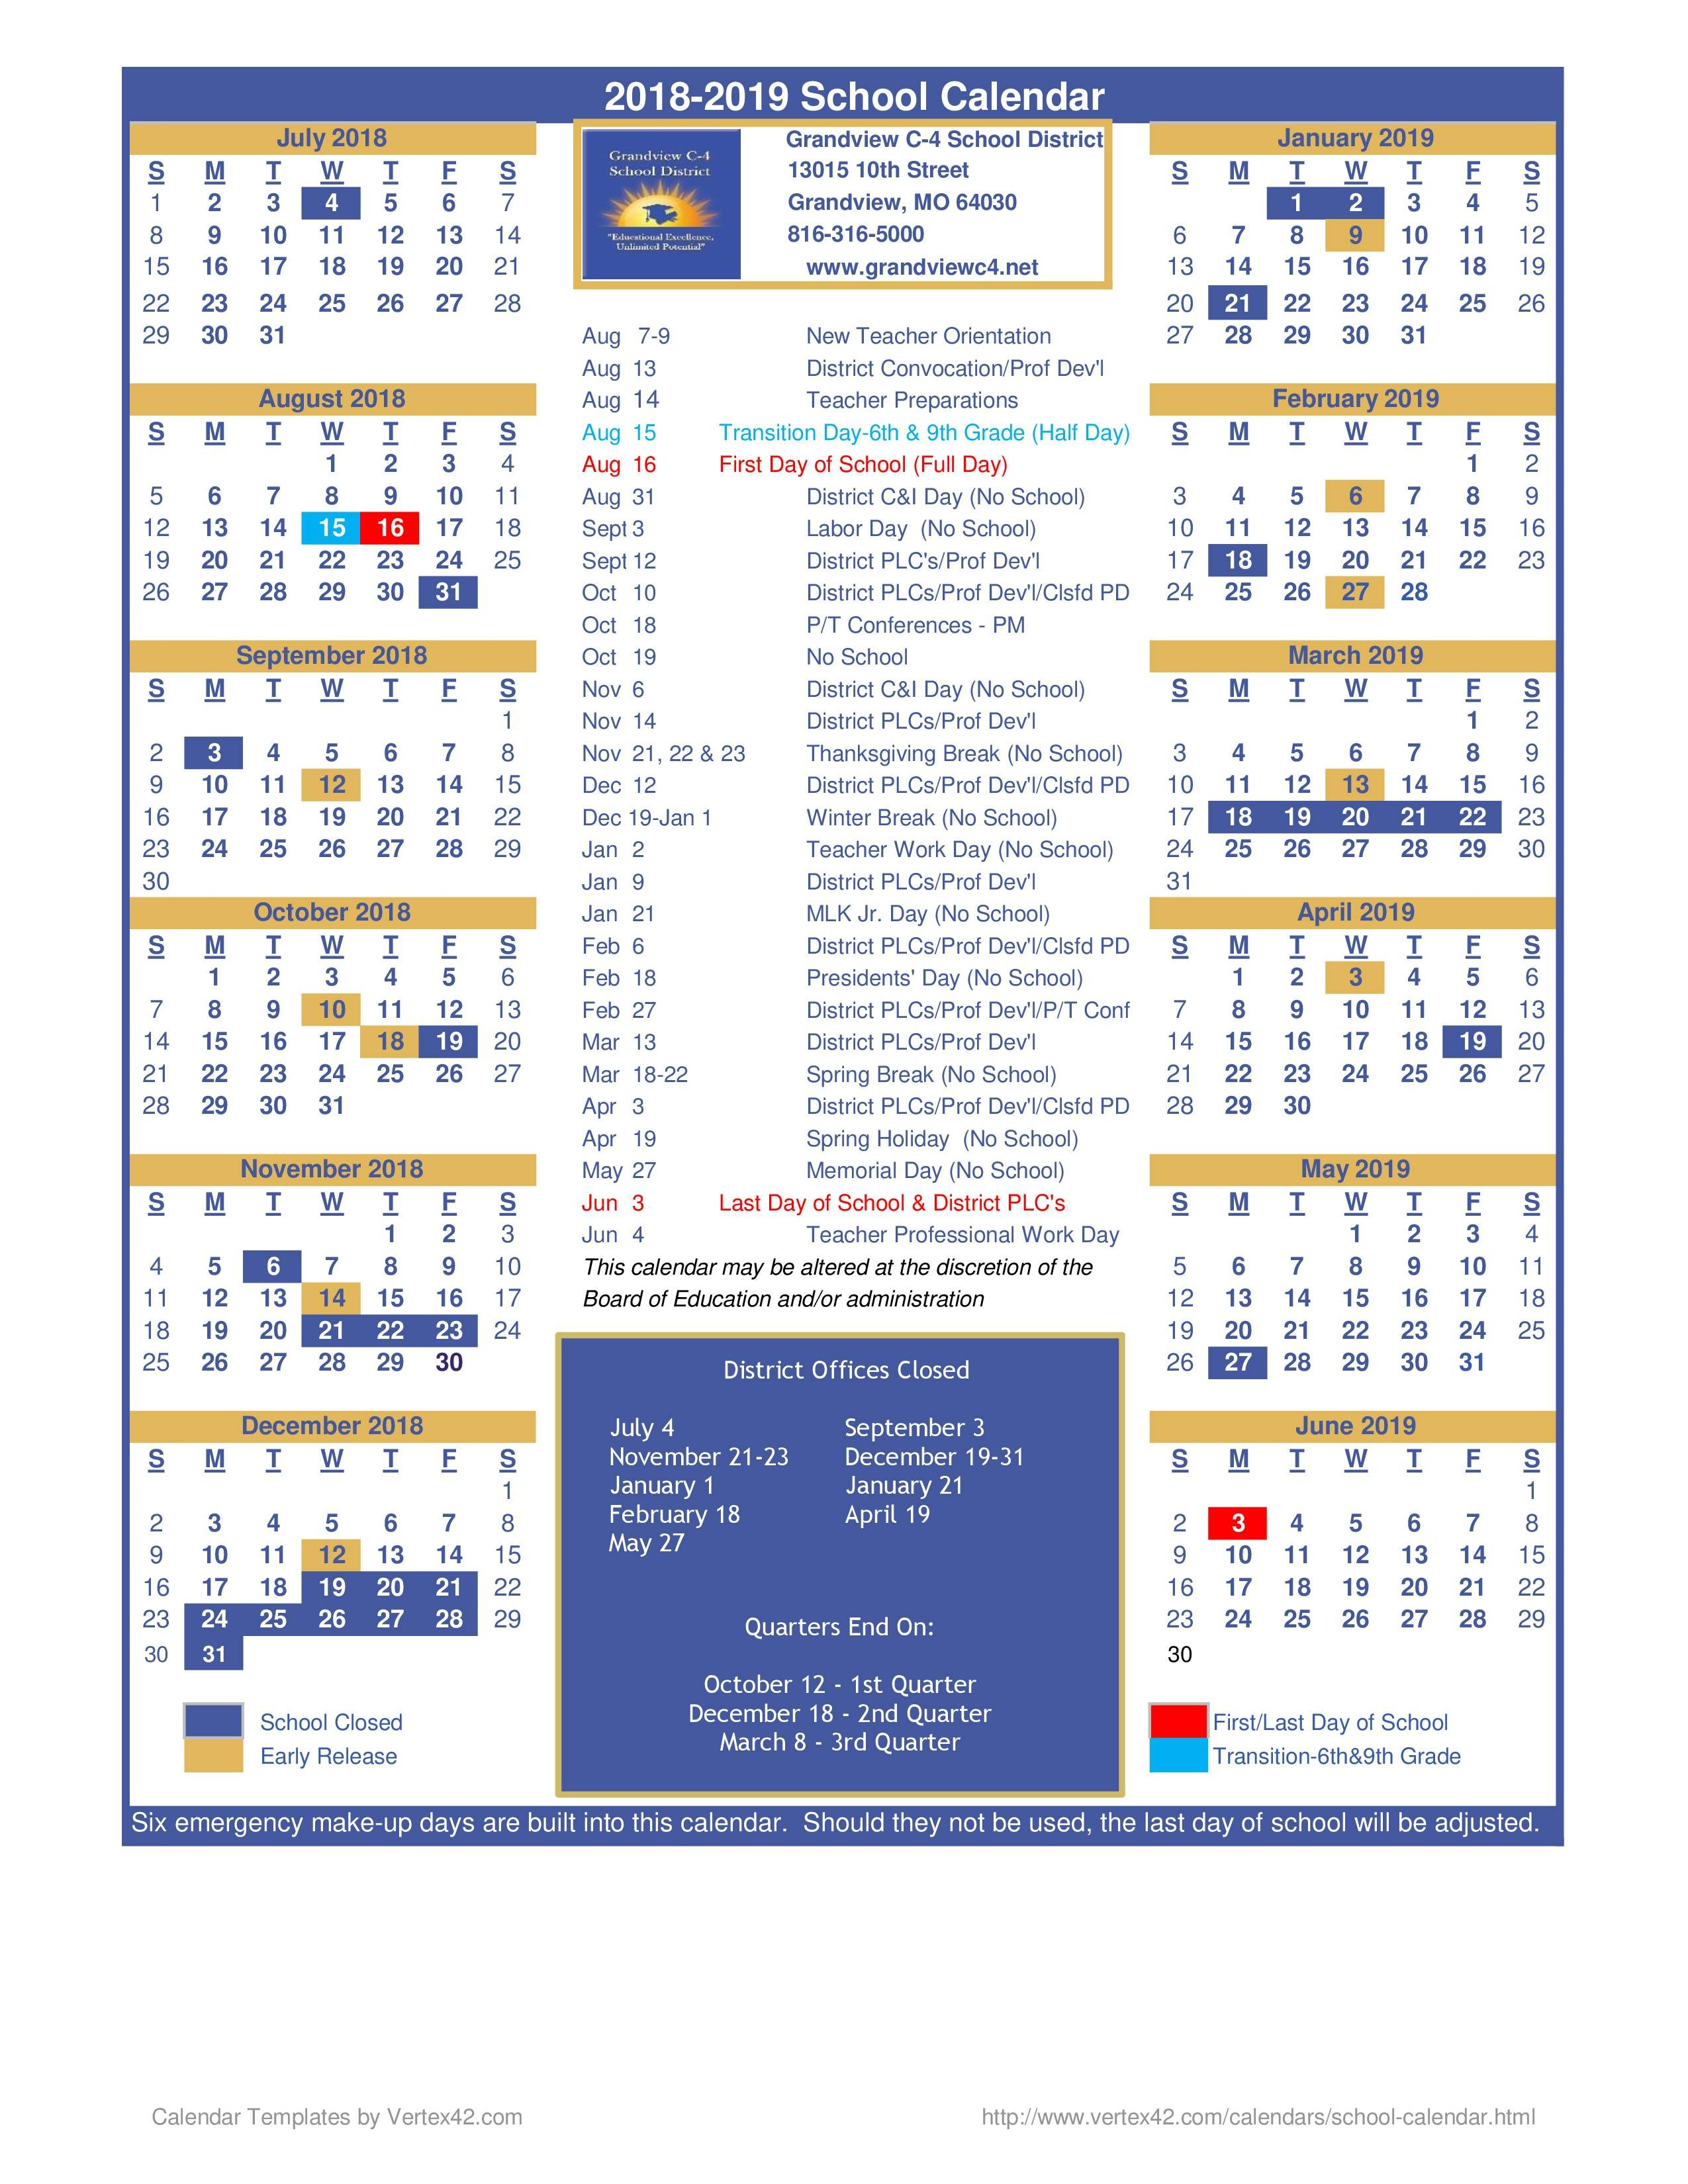 District Calendar District Calendar Grandview C 4 School District